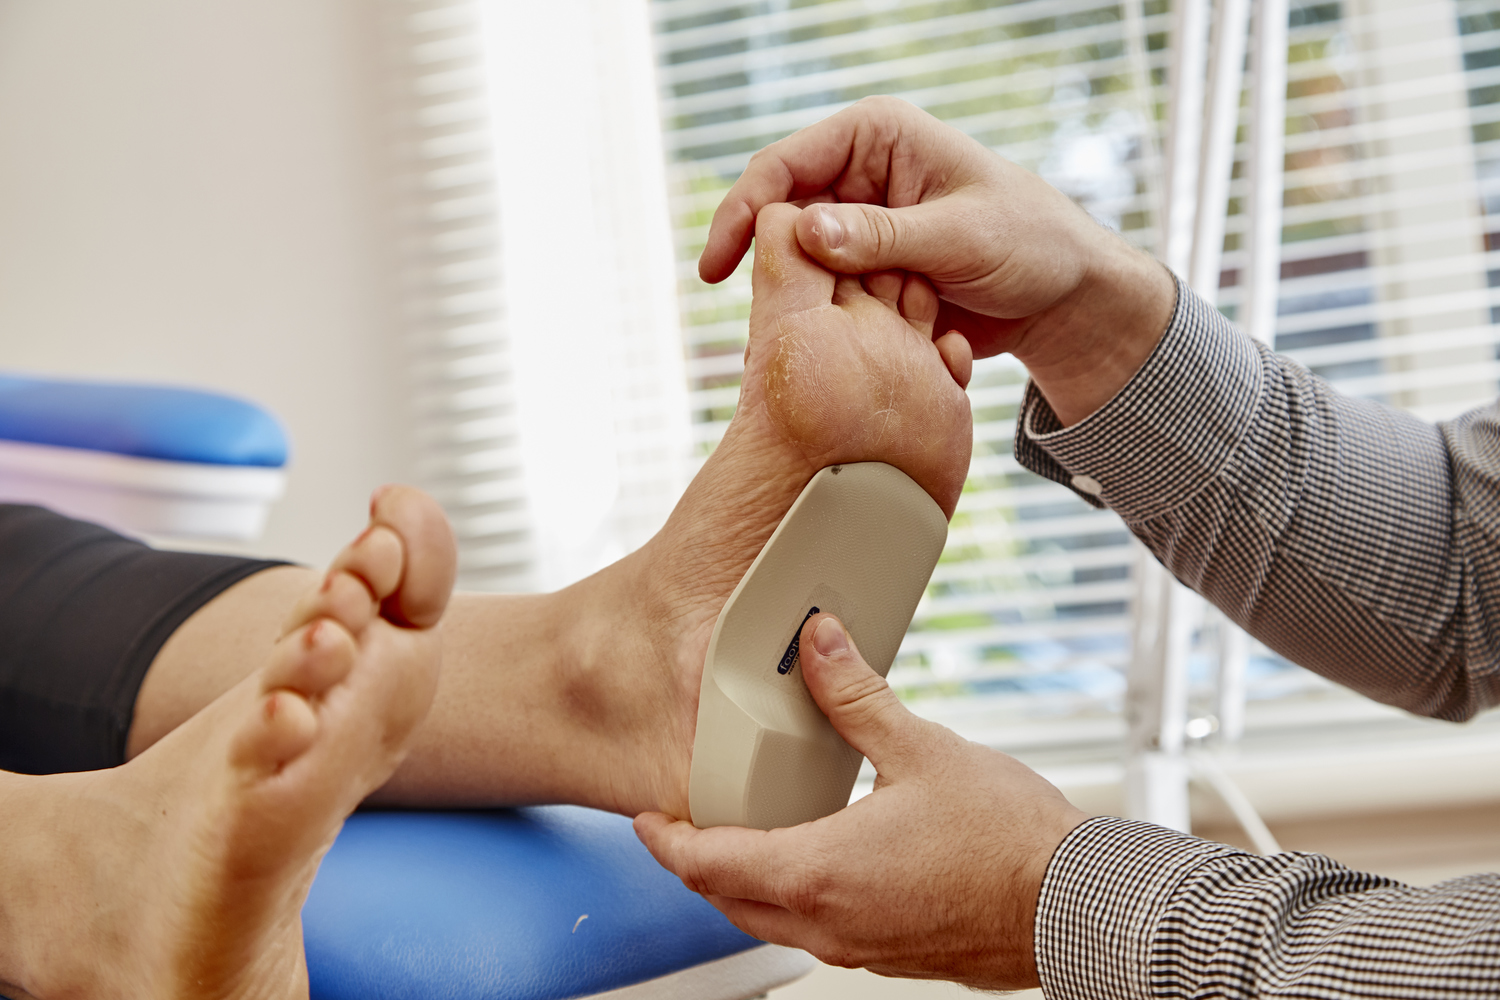 How Can Custom Orthotics Help Treat Your Foot Problems?